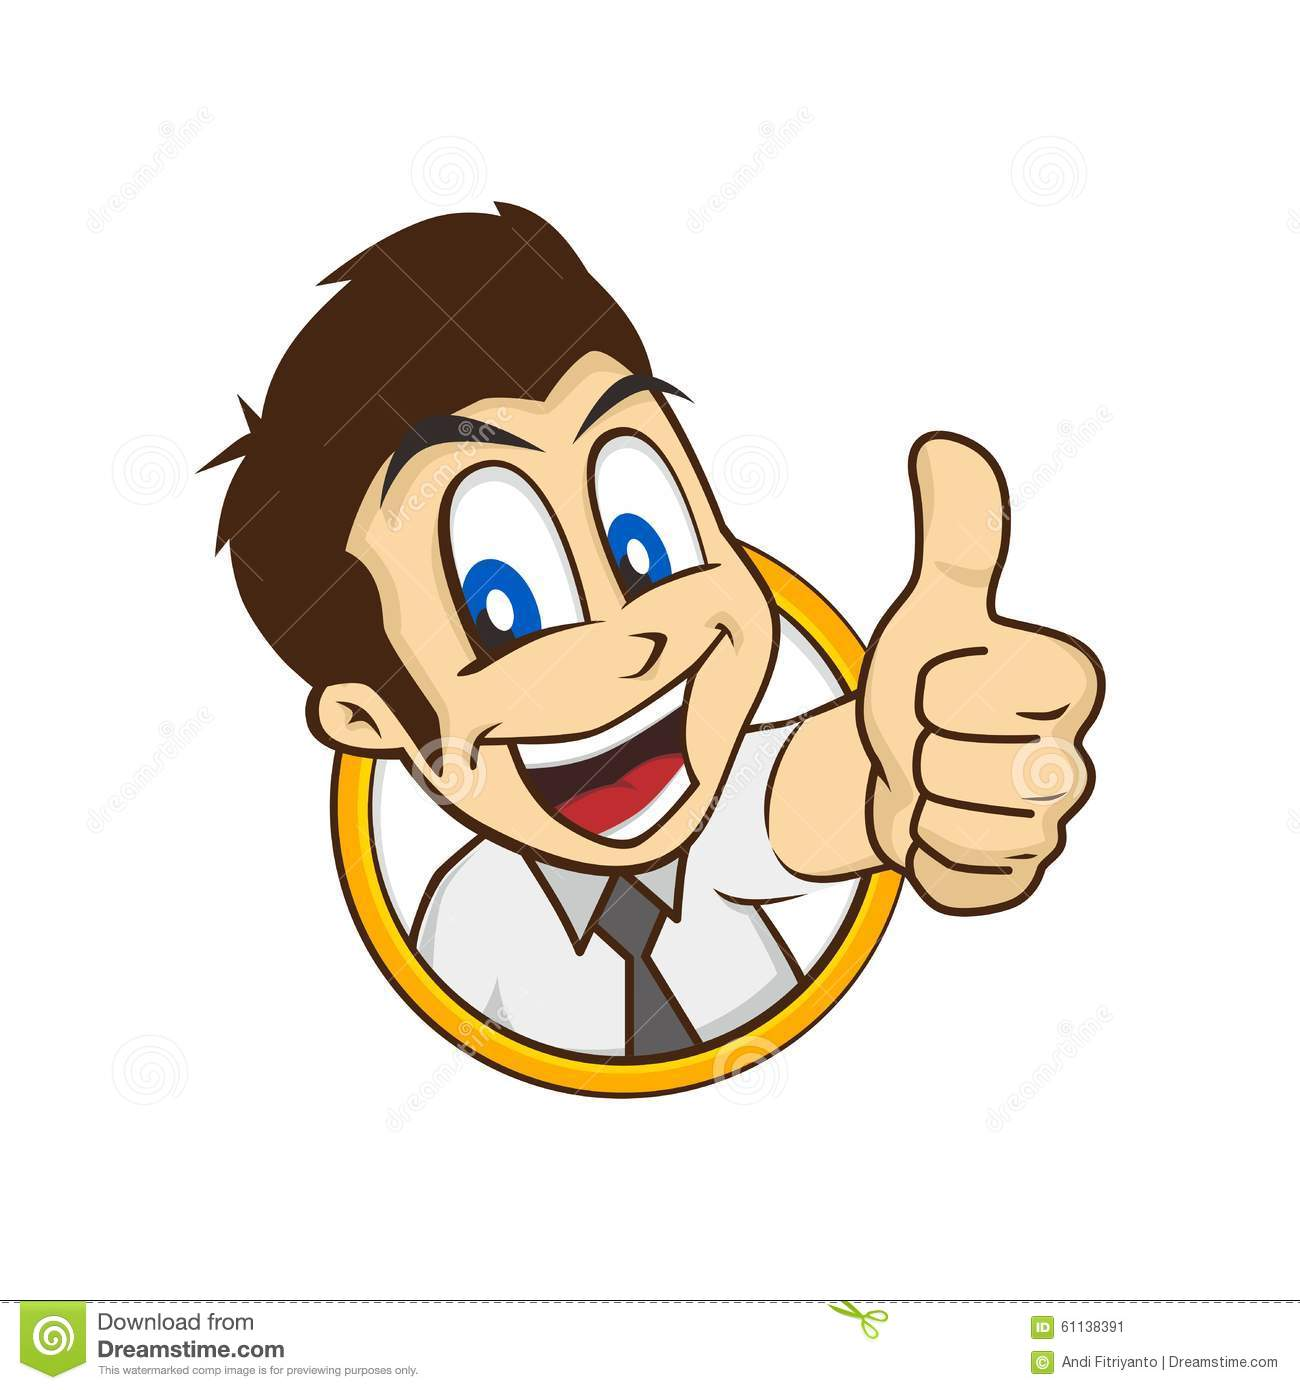 Cartoon guy thumbs up stock vector. Illustration of hyper ...